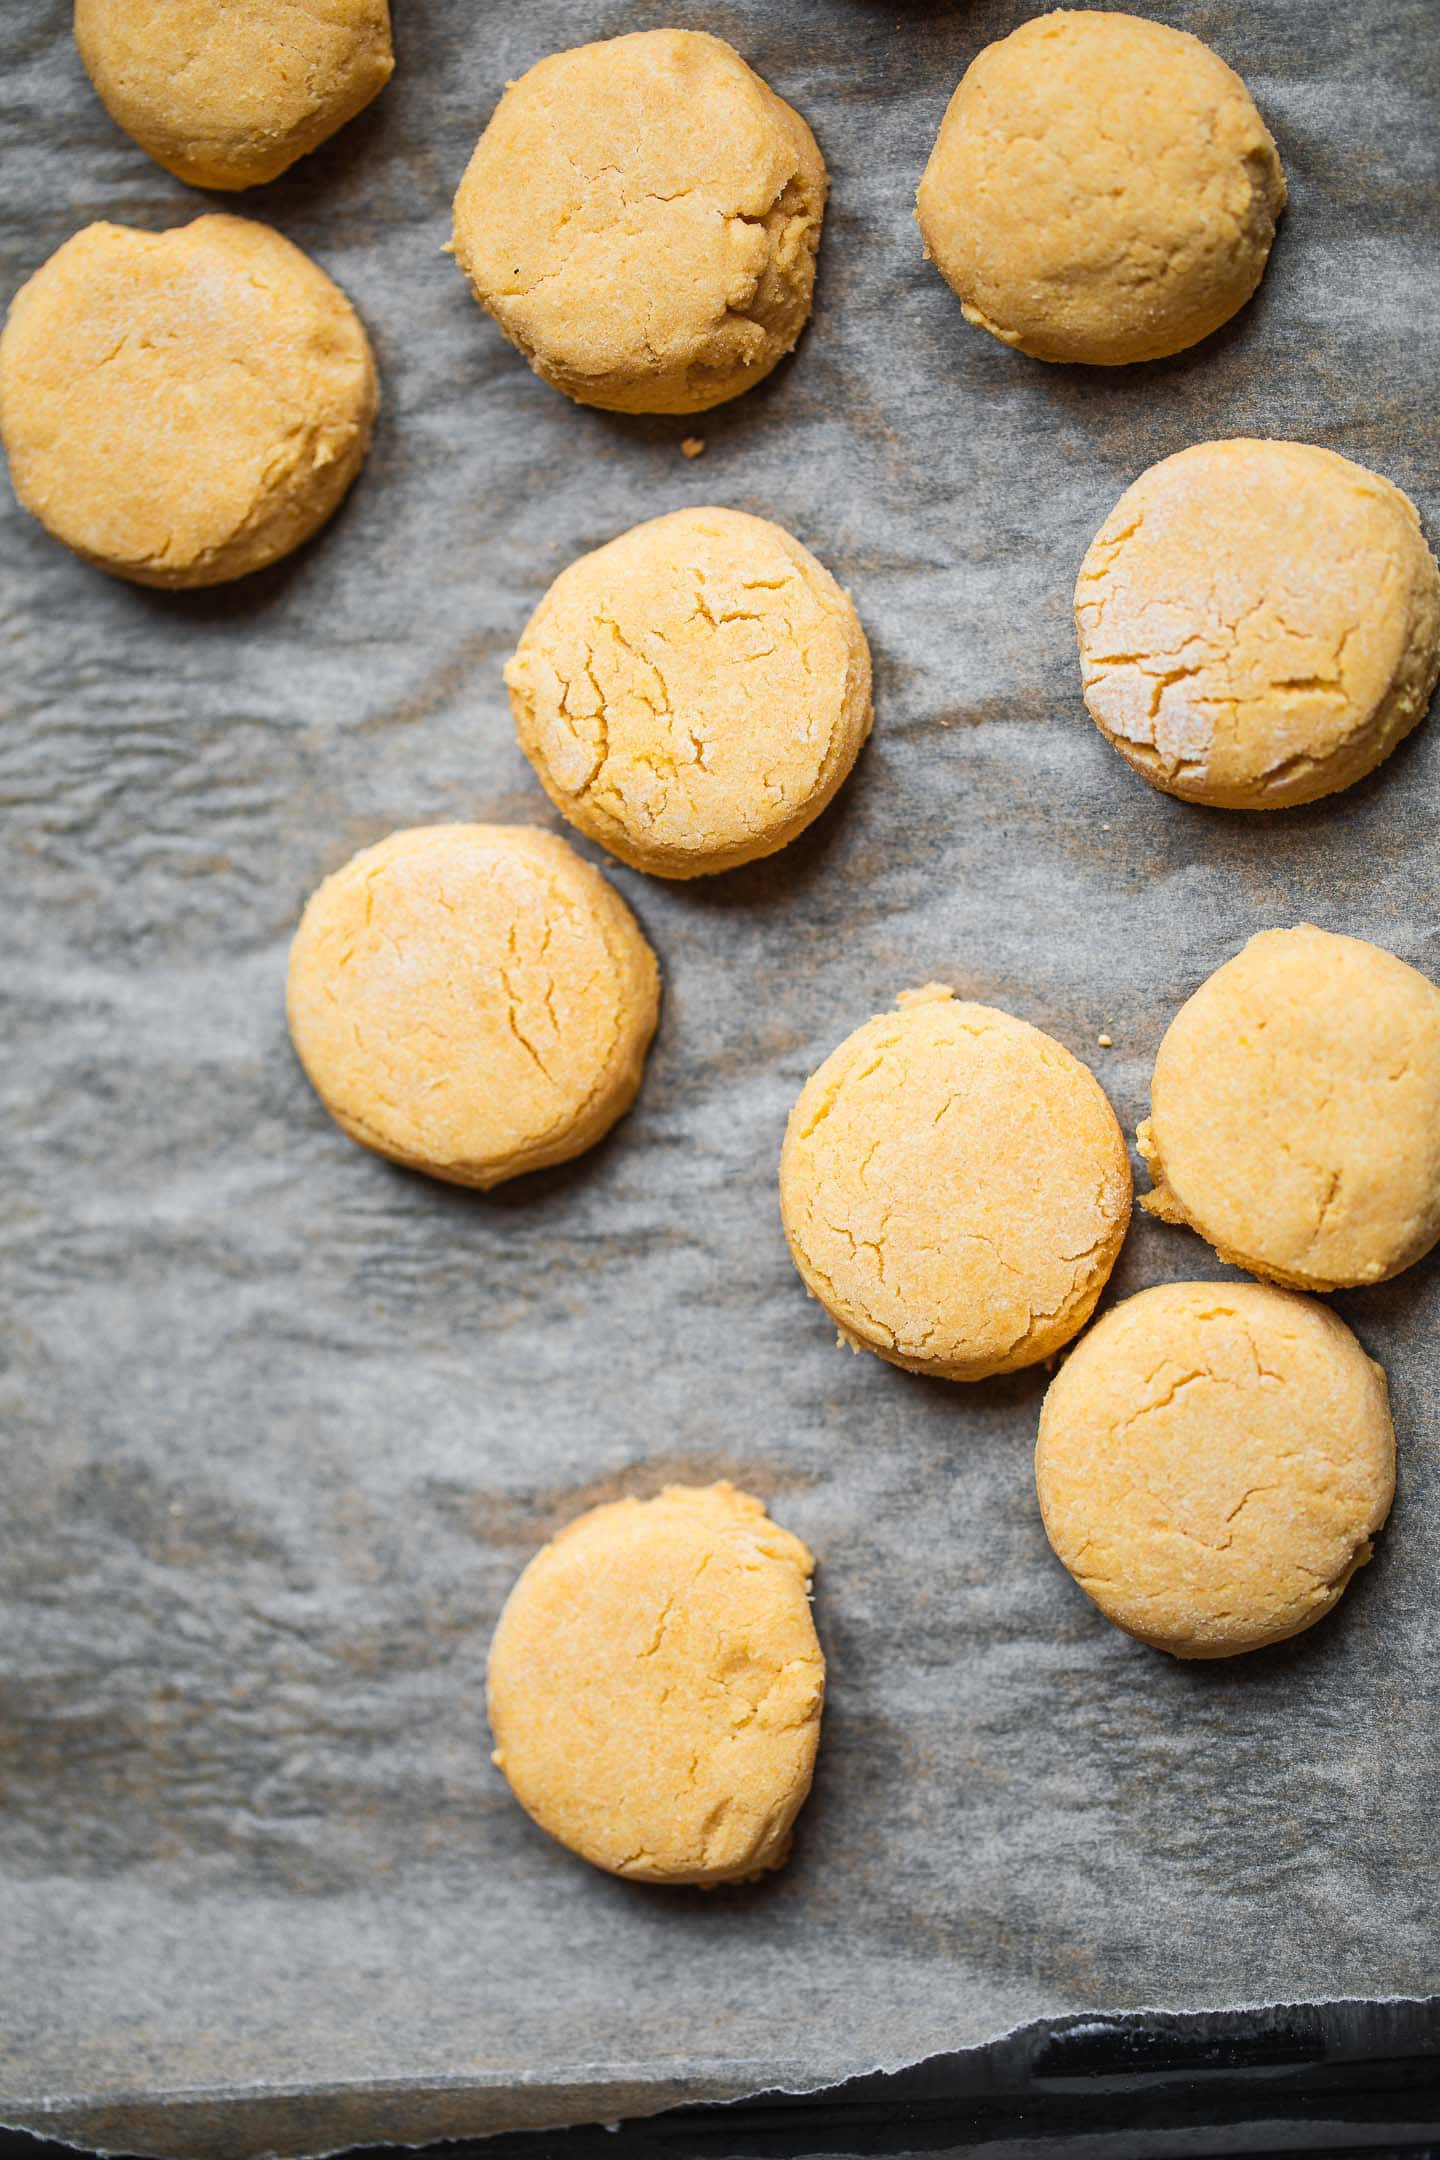 Vegan biscuits on a baking tray